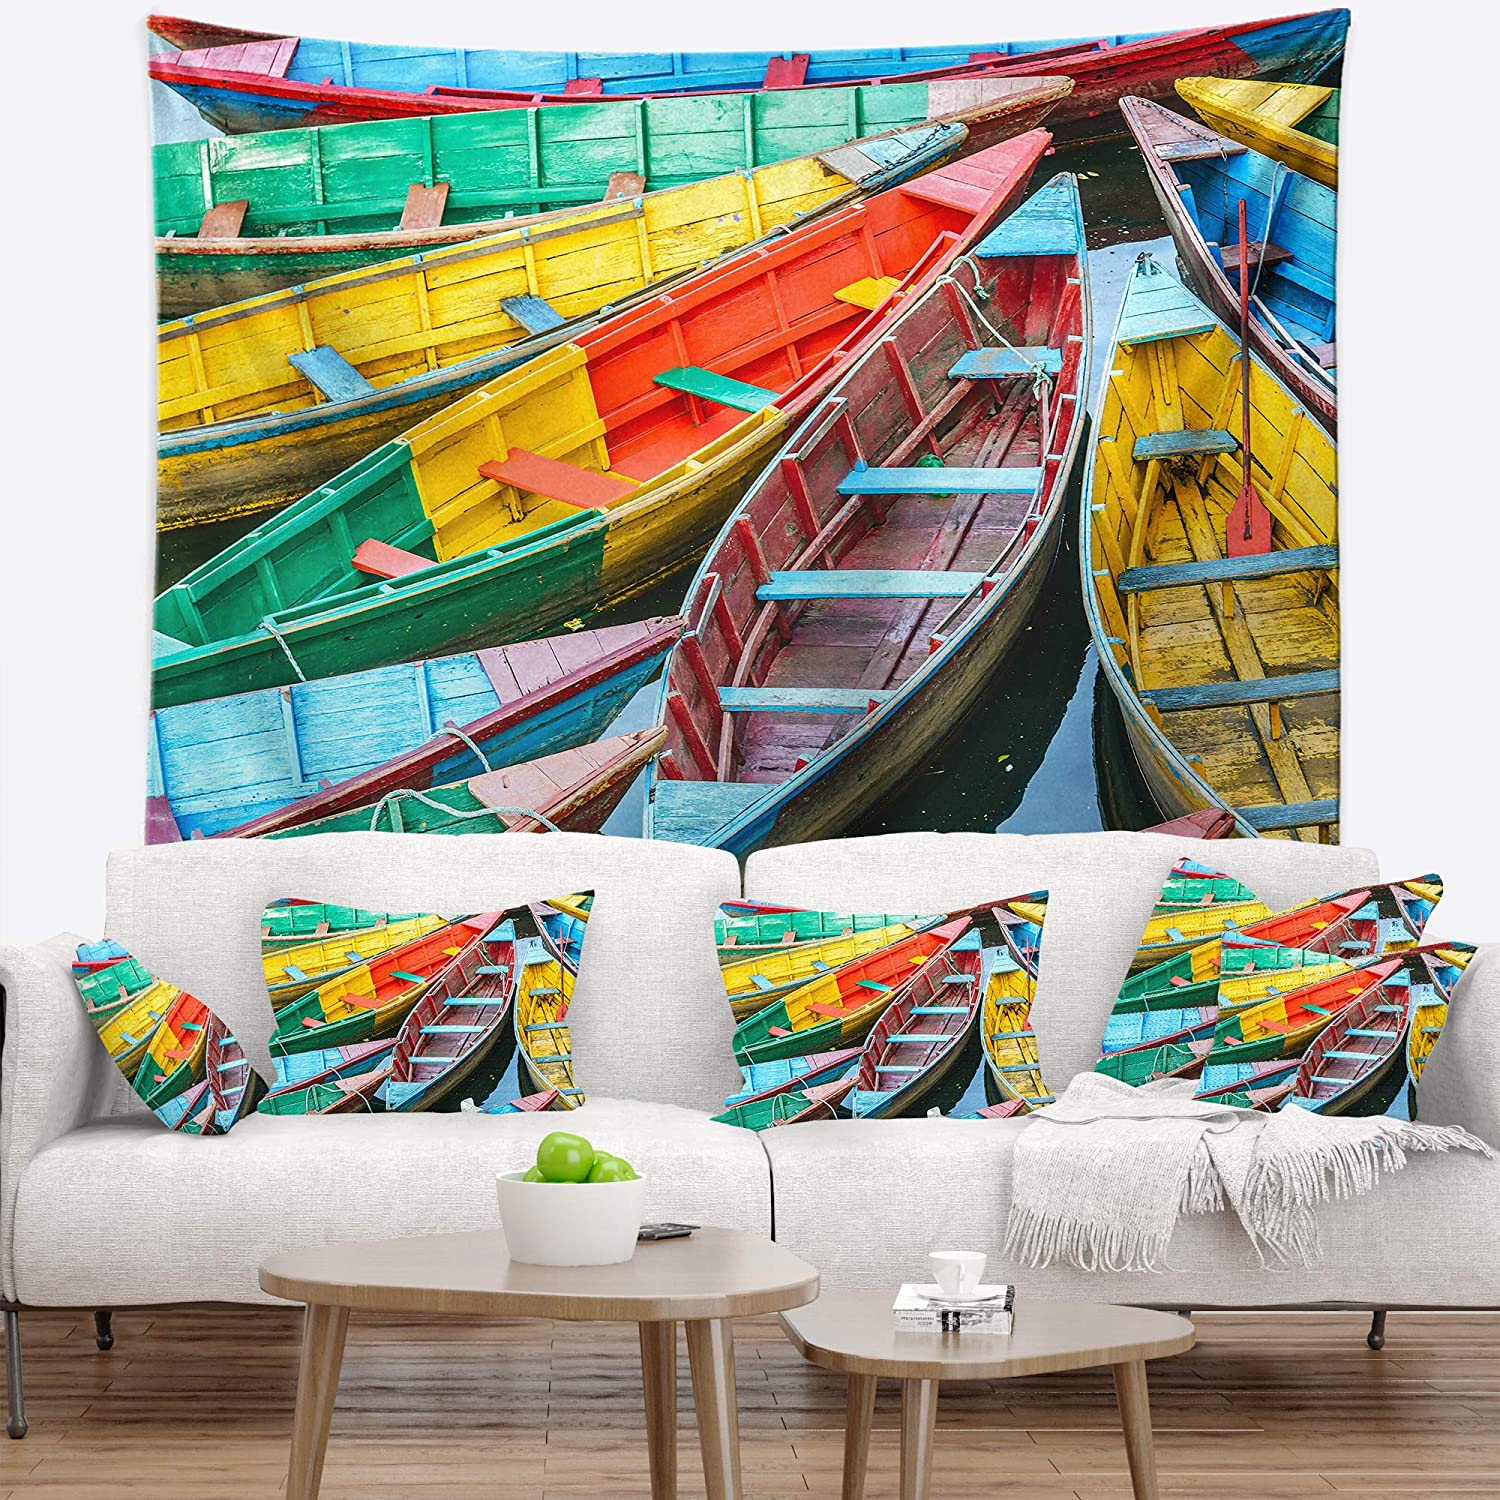 39 in Created On Lightweight Polyester Fabric x 32 in Designart TAP15697-39-32  Row of Blue Pokhara Lake Boat Blanket D/écor Art for Home and Office Wall Tapestry Medium